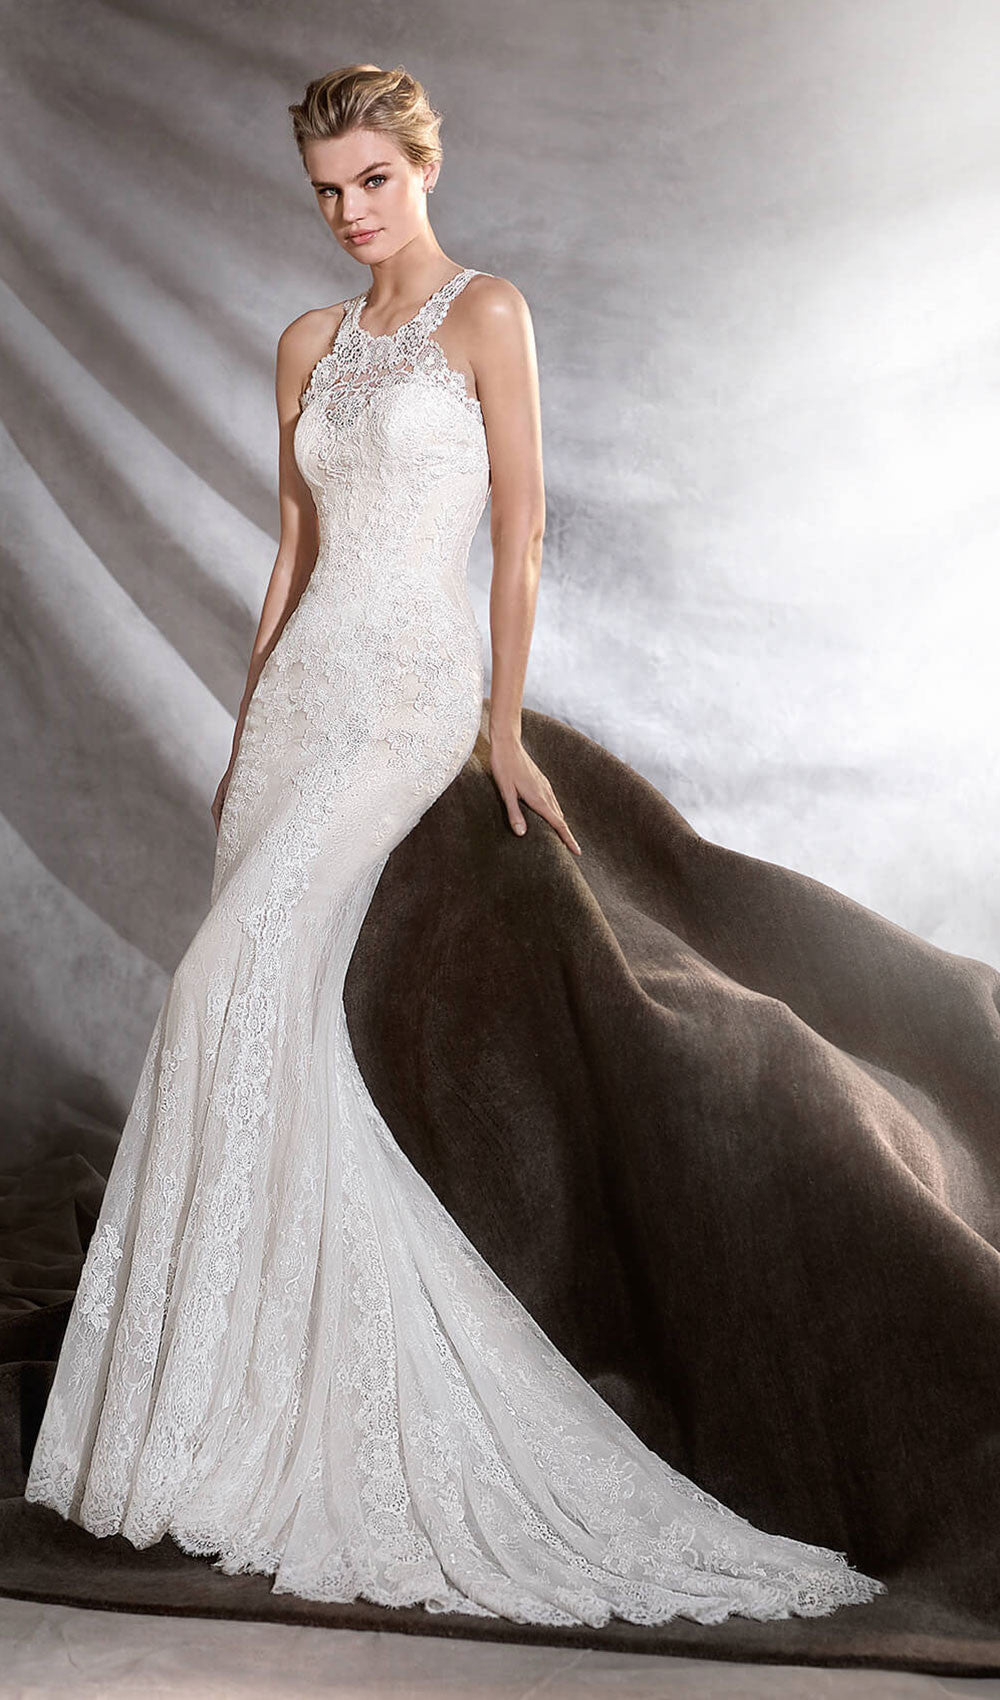 Pronovias - STYLE OSINI| Schaffer's Bridal in Des Moines, Iowa and in Scottsdale, Arizona